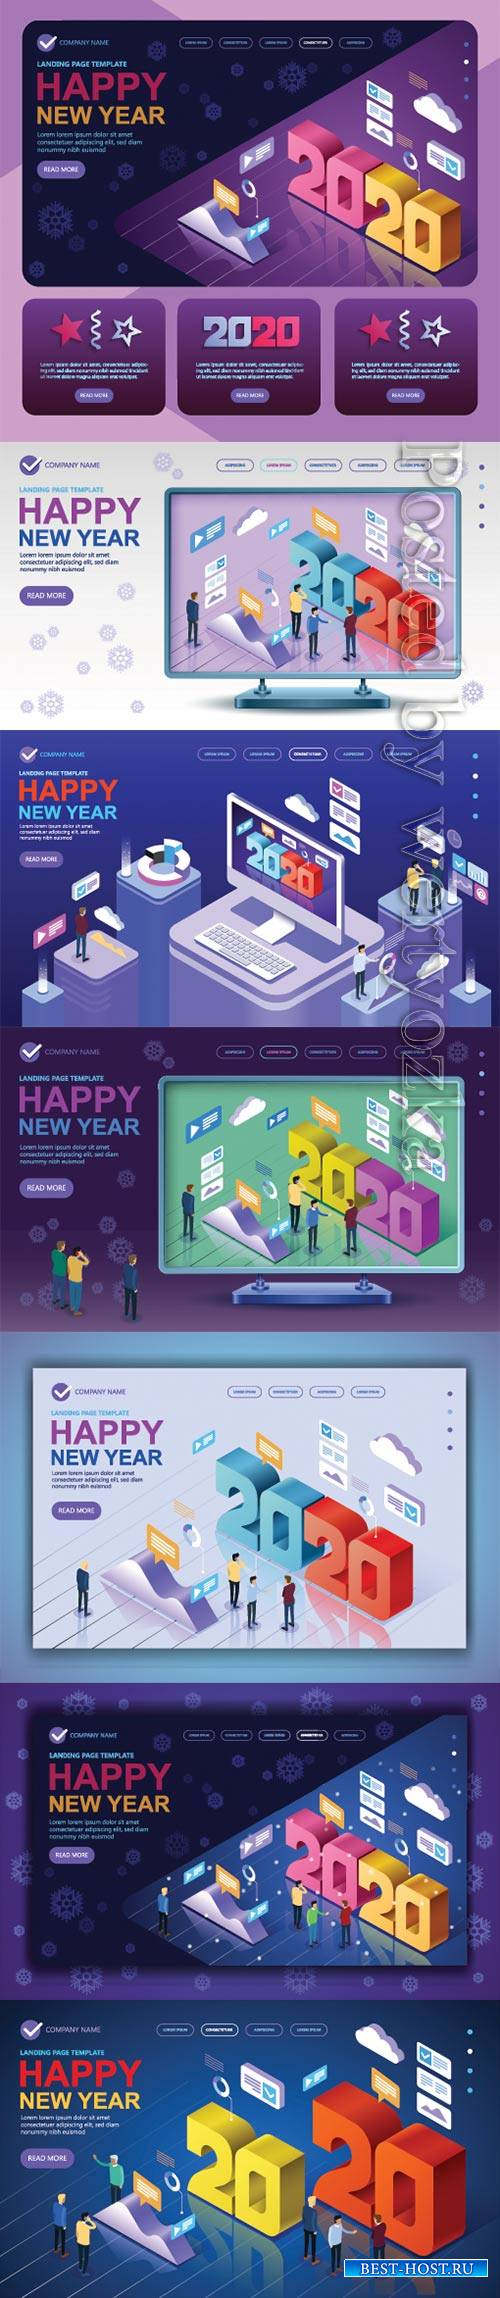 Isometric vector concept banner 2020 a Happy New Year greetings